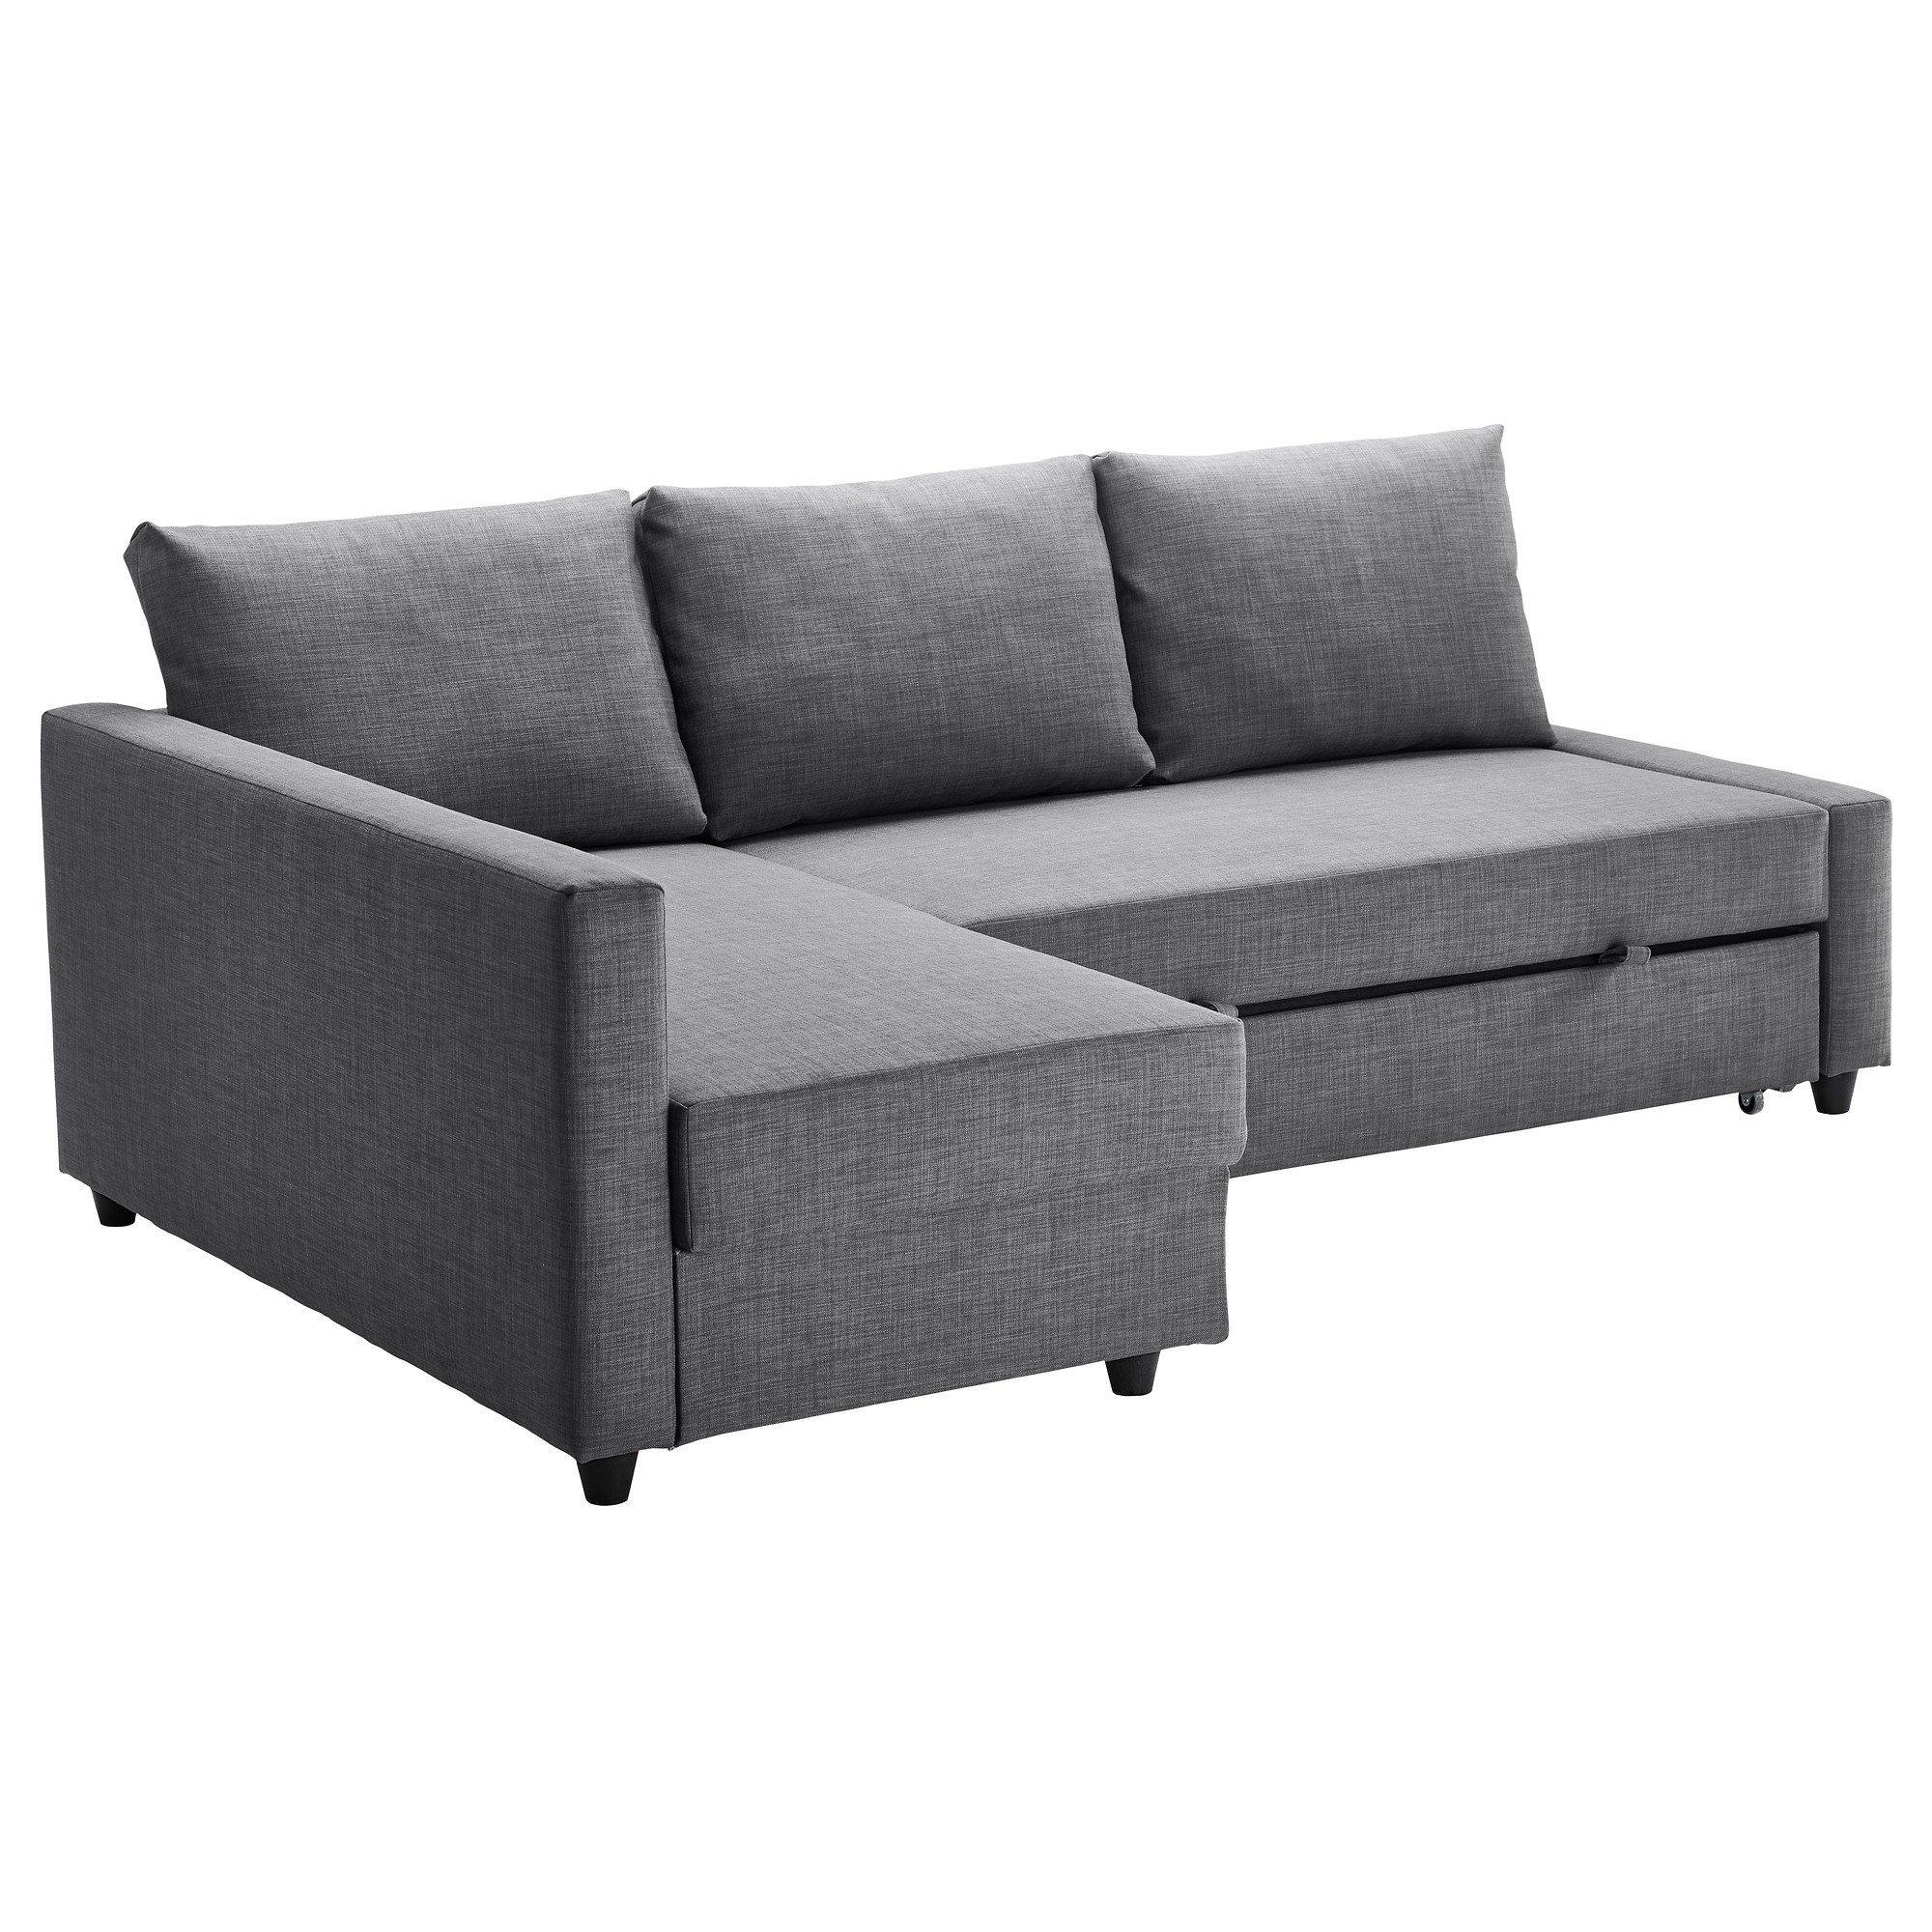 sectional sleeper sofa ikea photo - 6